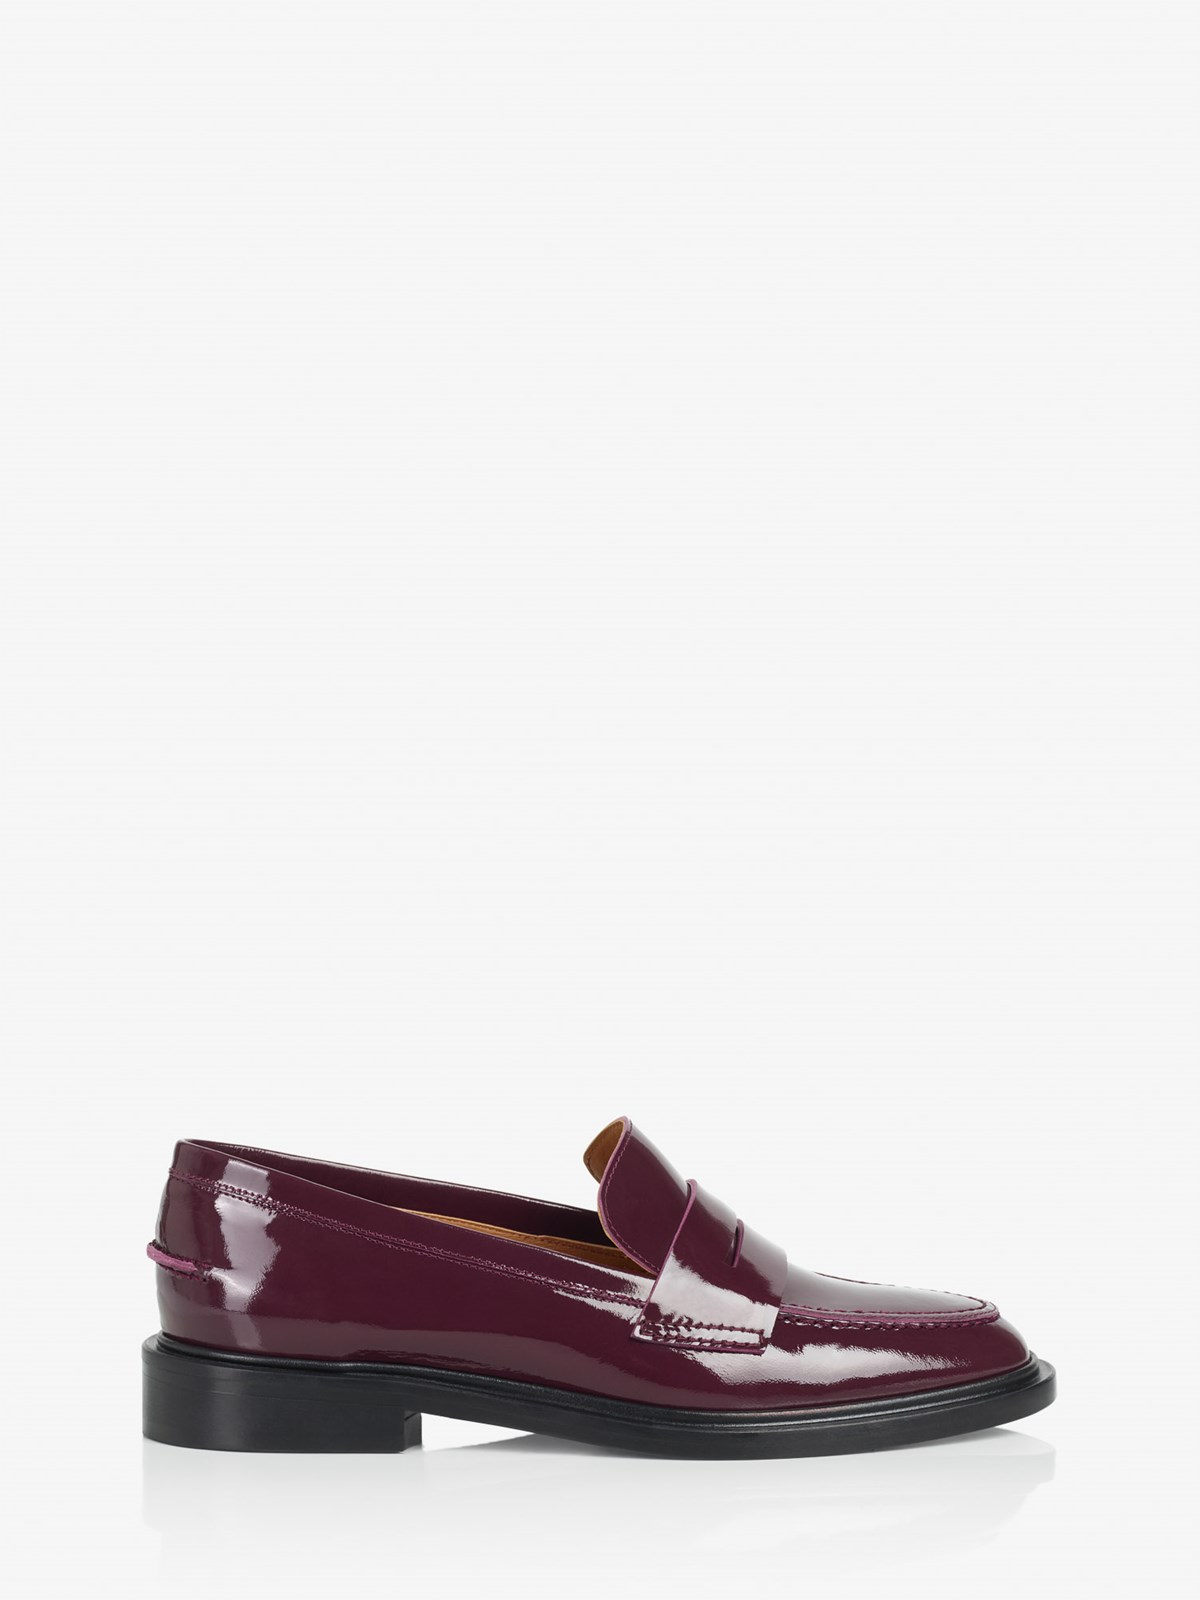 Monti Brunello Loafers